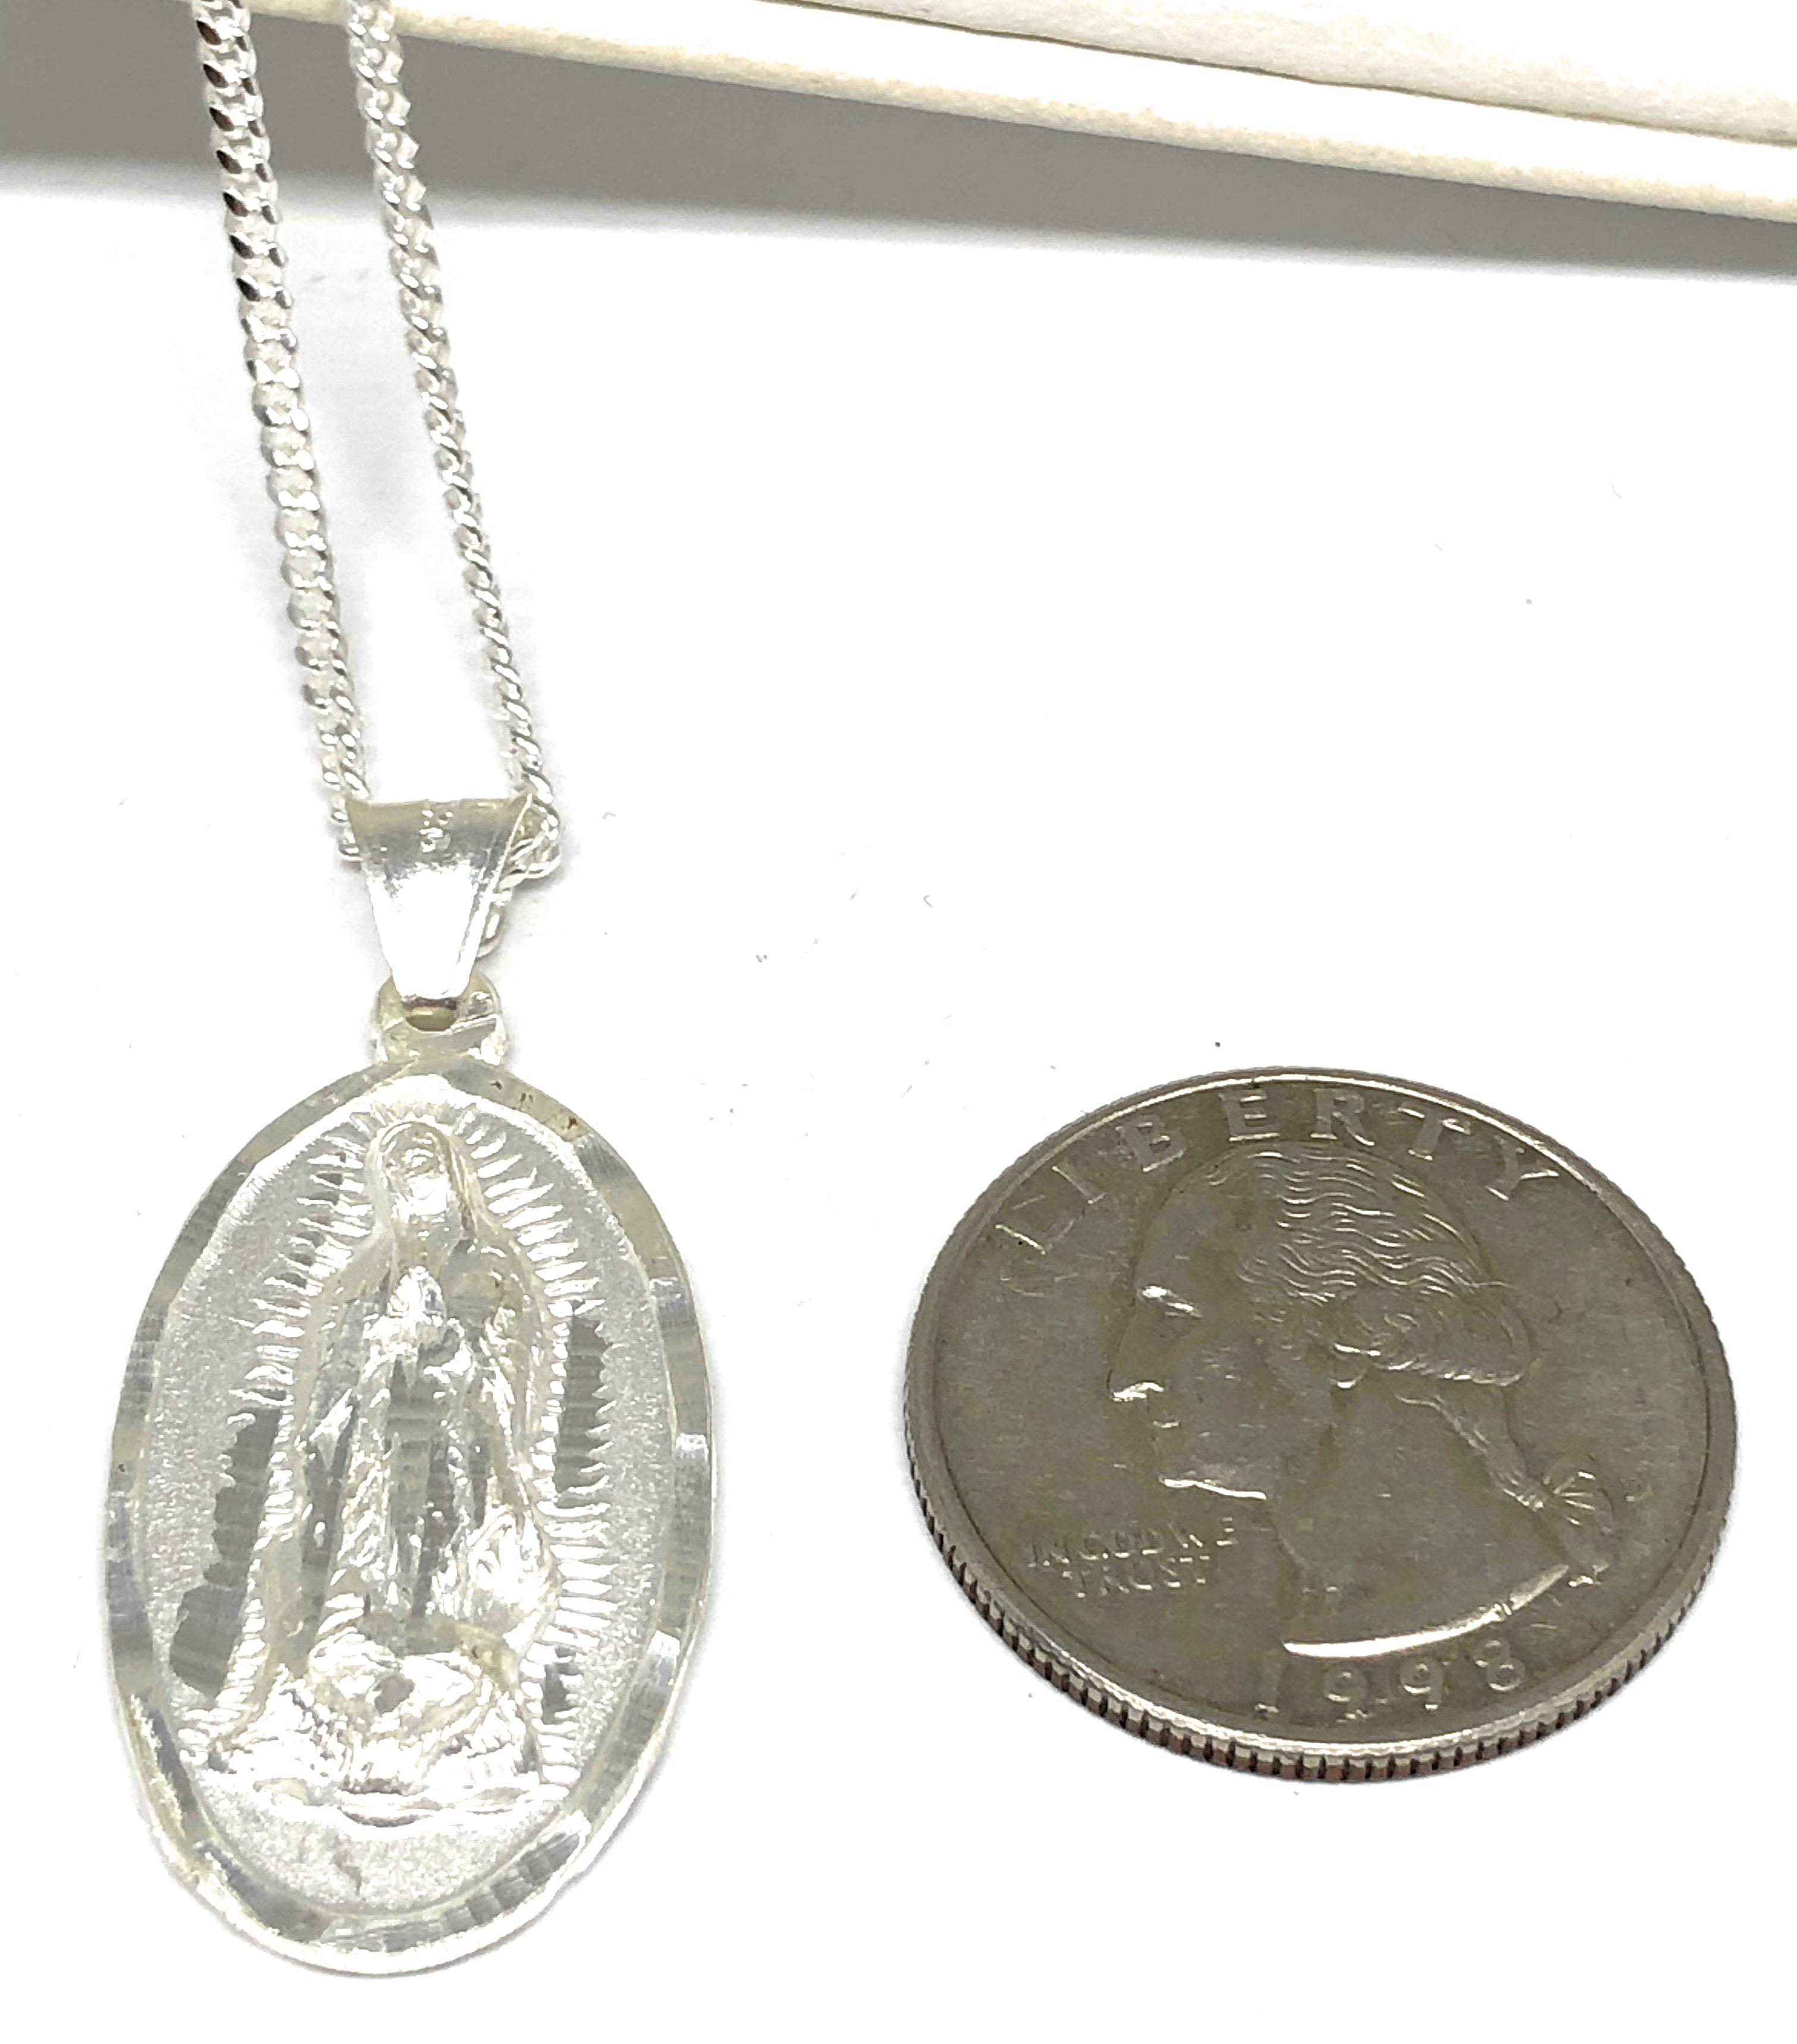 .925 Silver Virrgin Marry Pendant Necklace with Chain Options